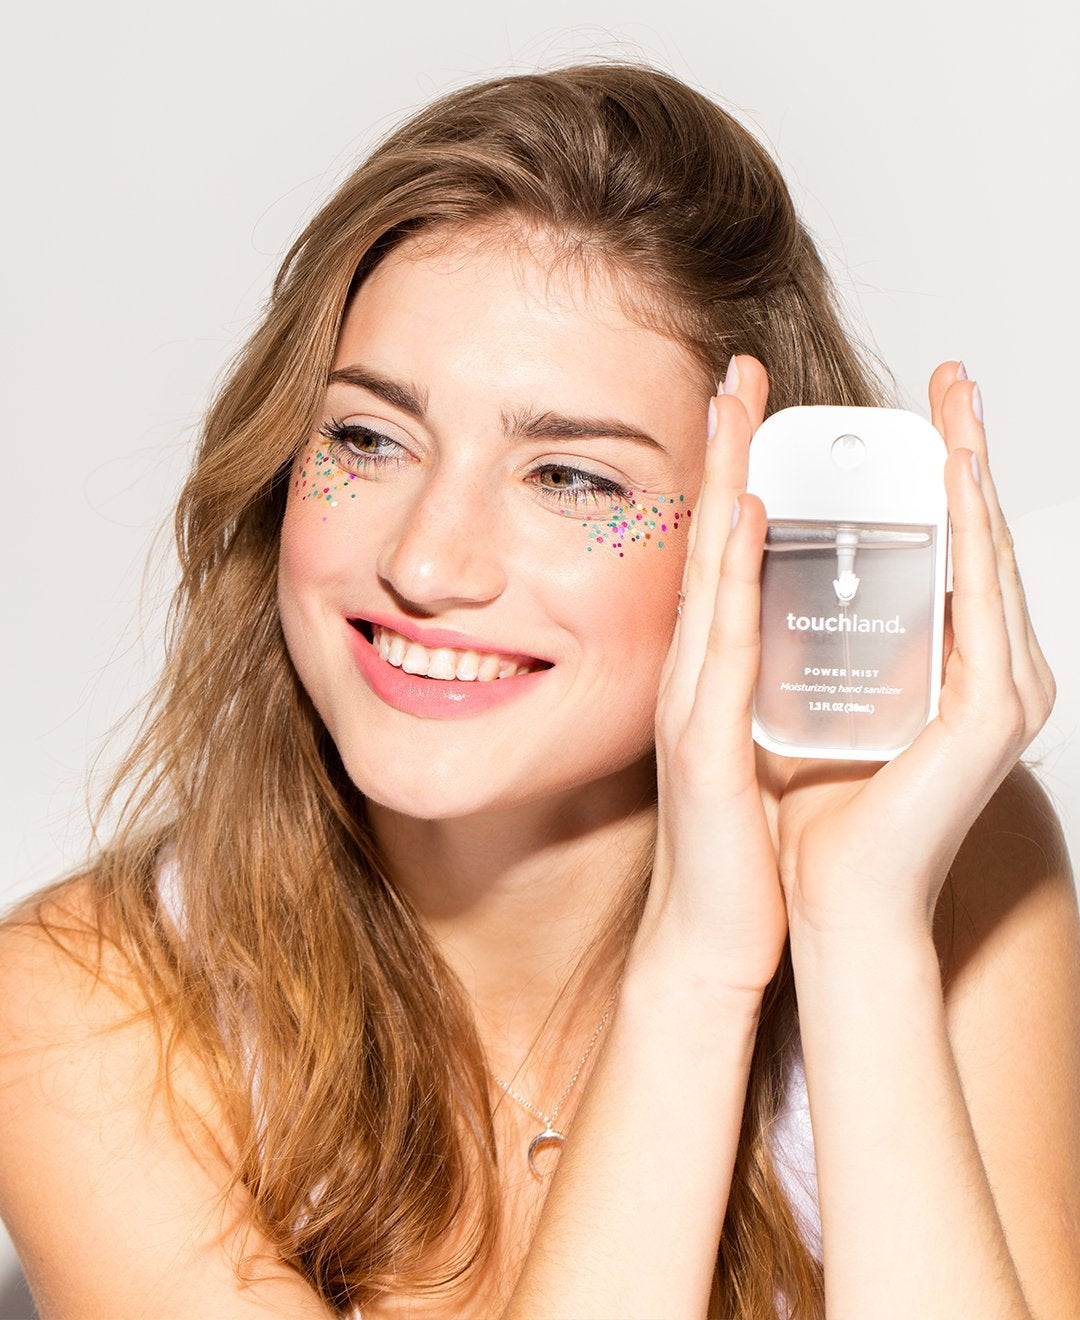 model holding Touchland unscented hand sanitizer